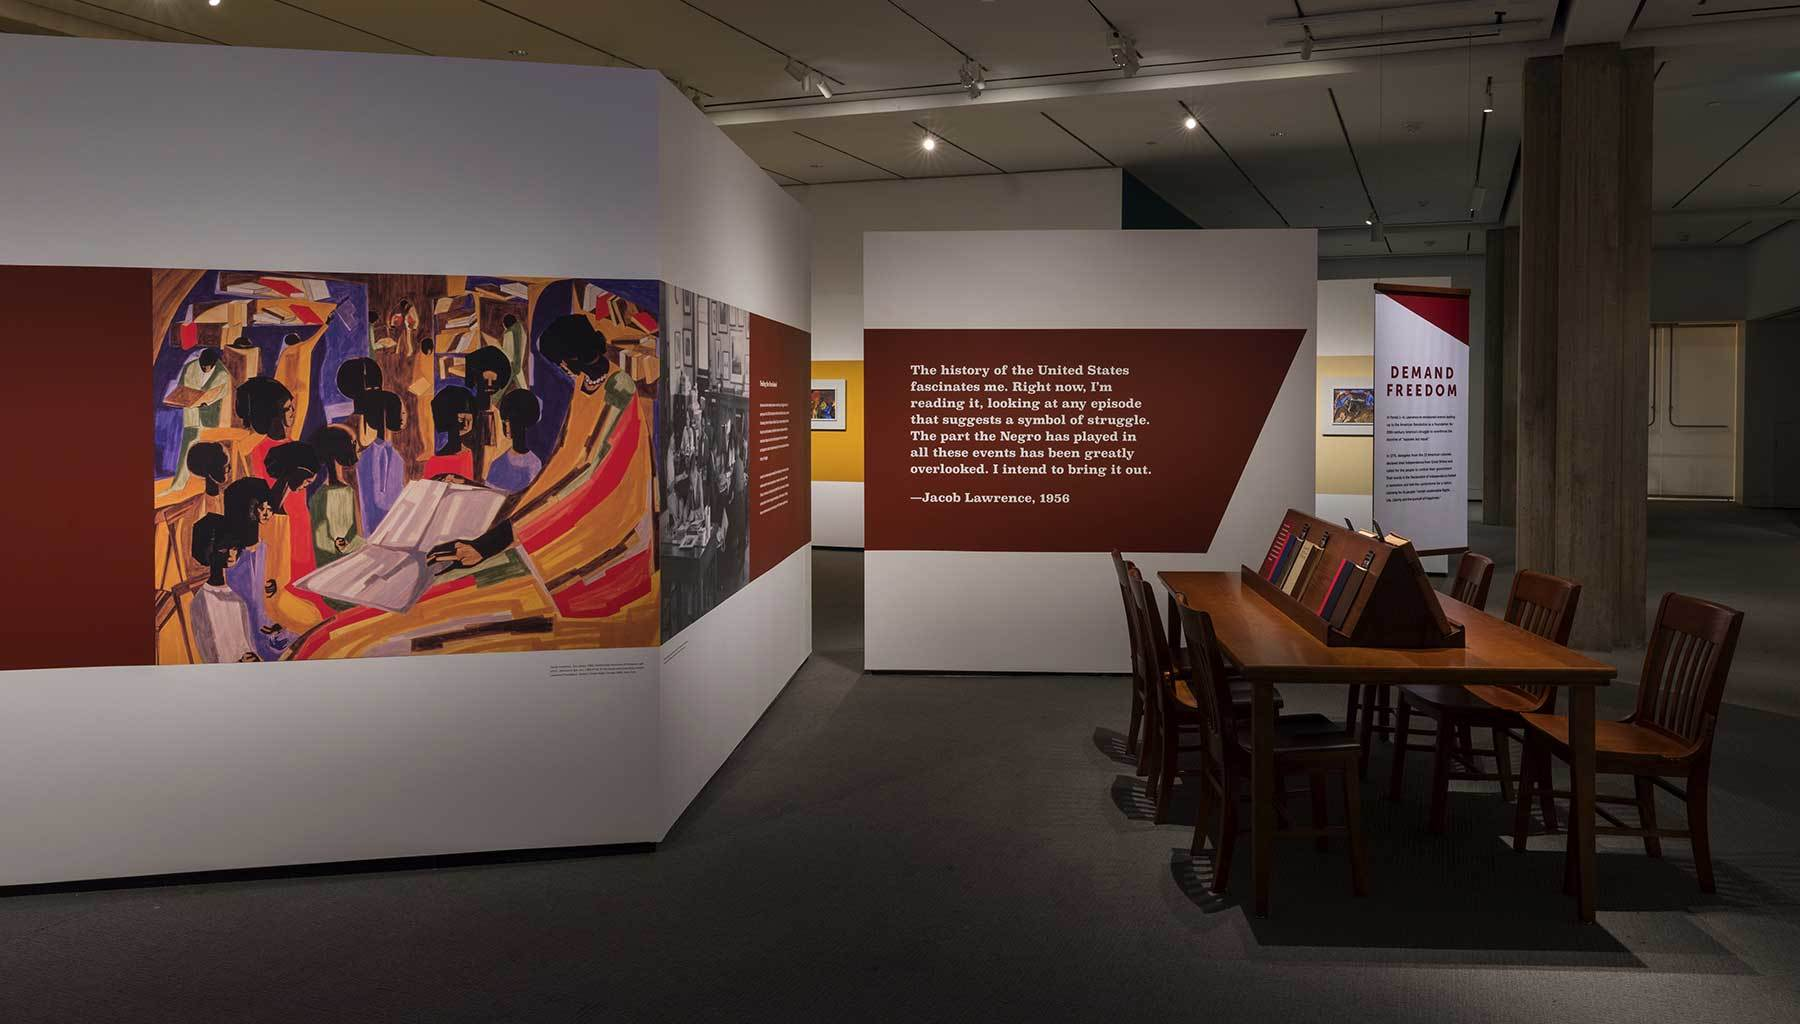 Jacob Lawrence, The Library, 1960 on the wall of the installation of  Jacob Lawrence: The American Struggle.